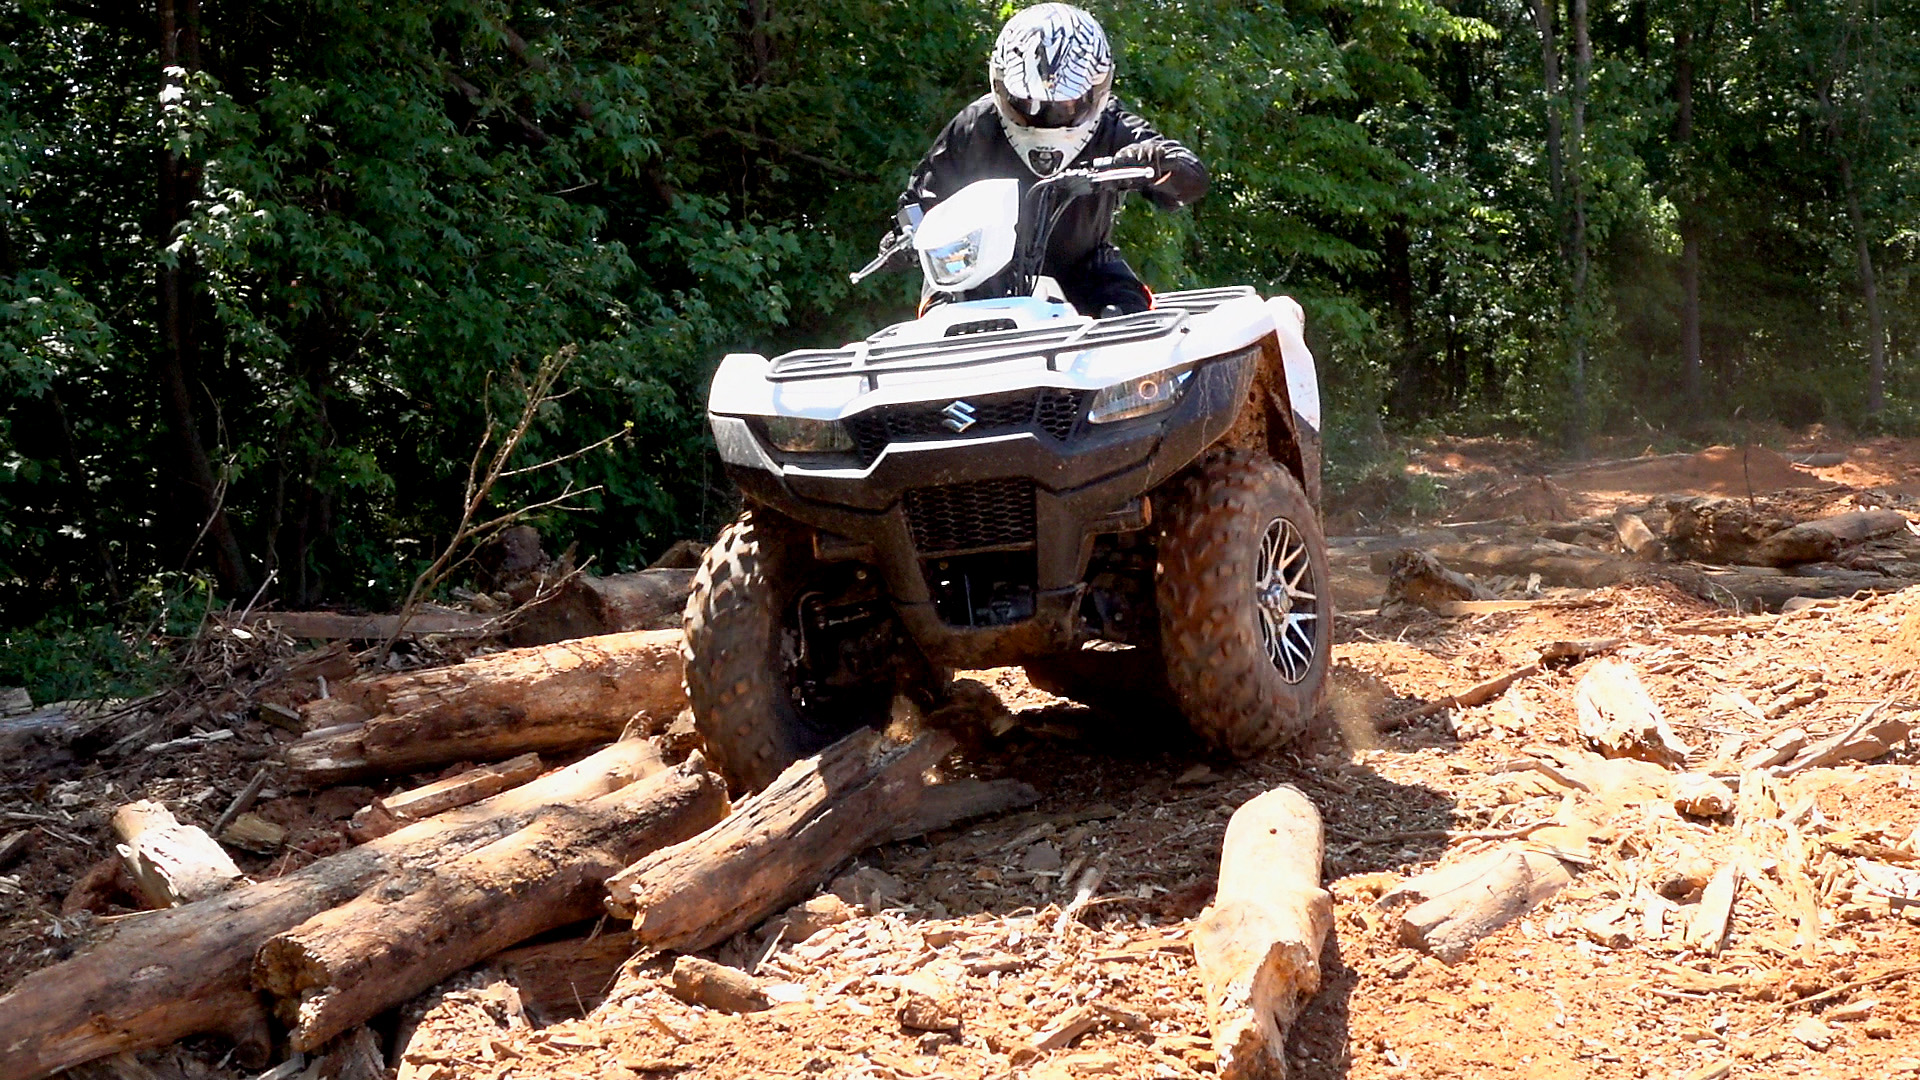 2019 Suzuki KinQuad 750 Test Review: WITH VIDEO